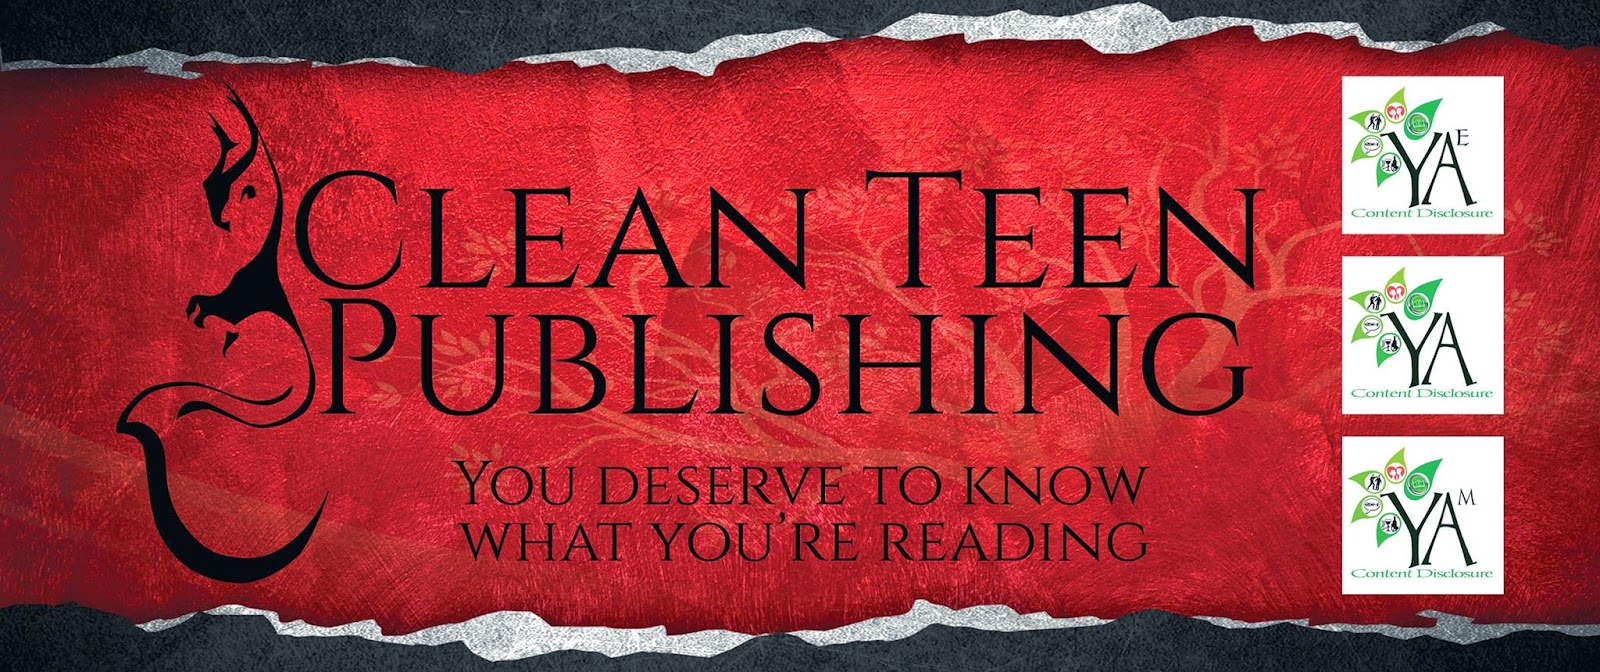 Agree, book publishing company for teens for mad